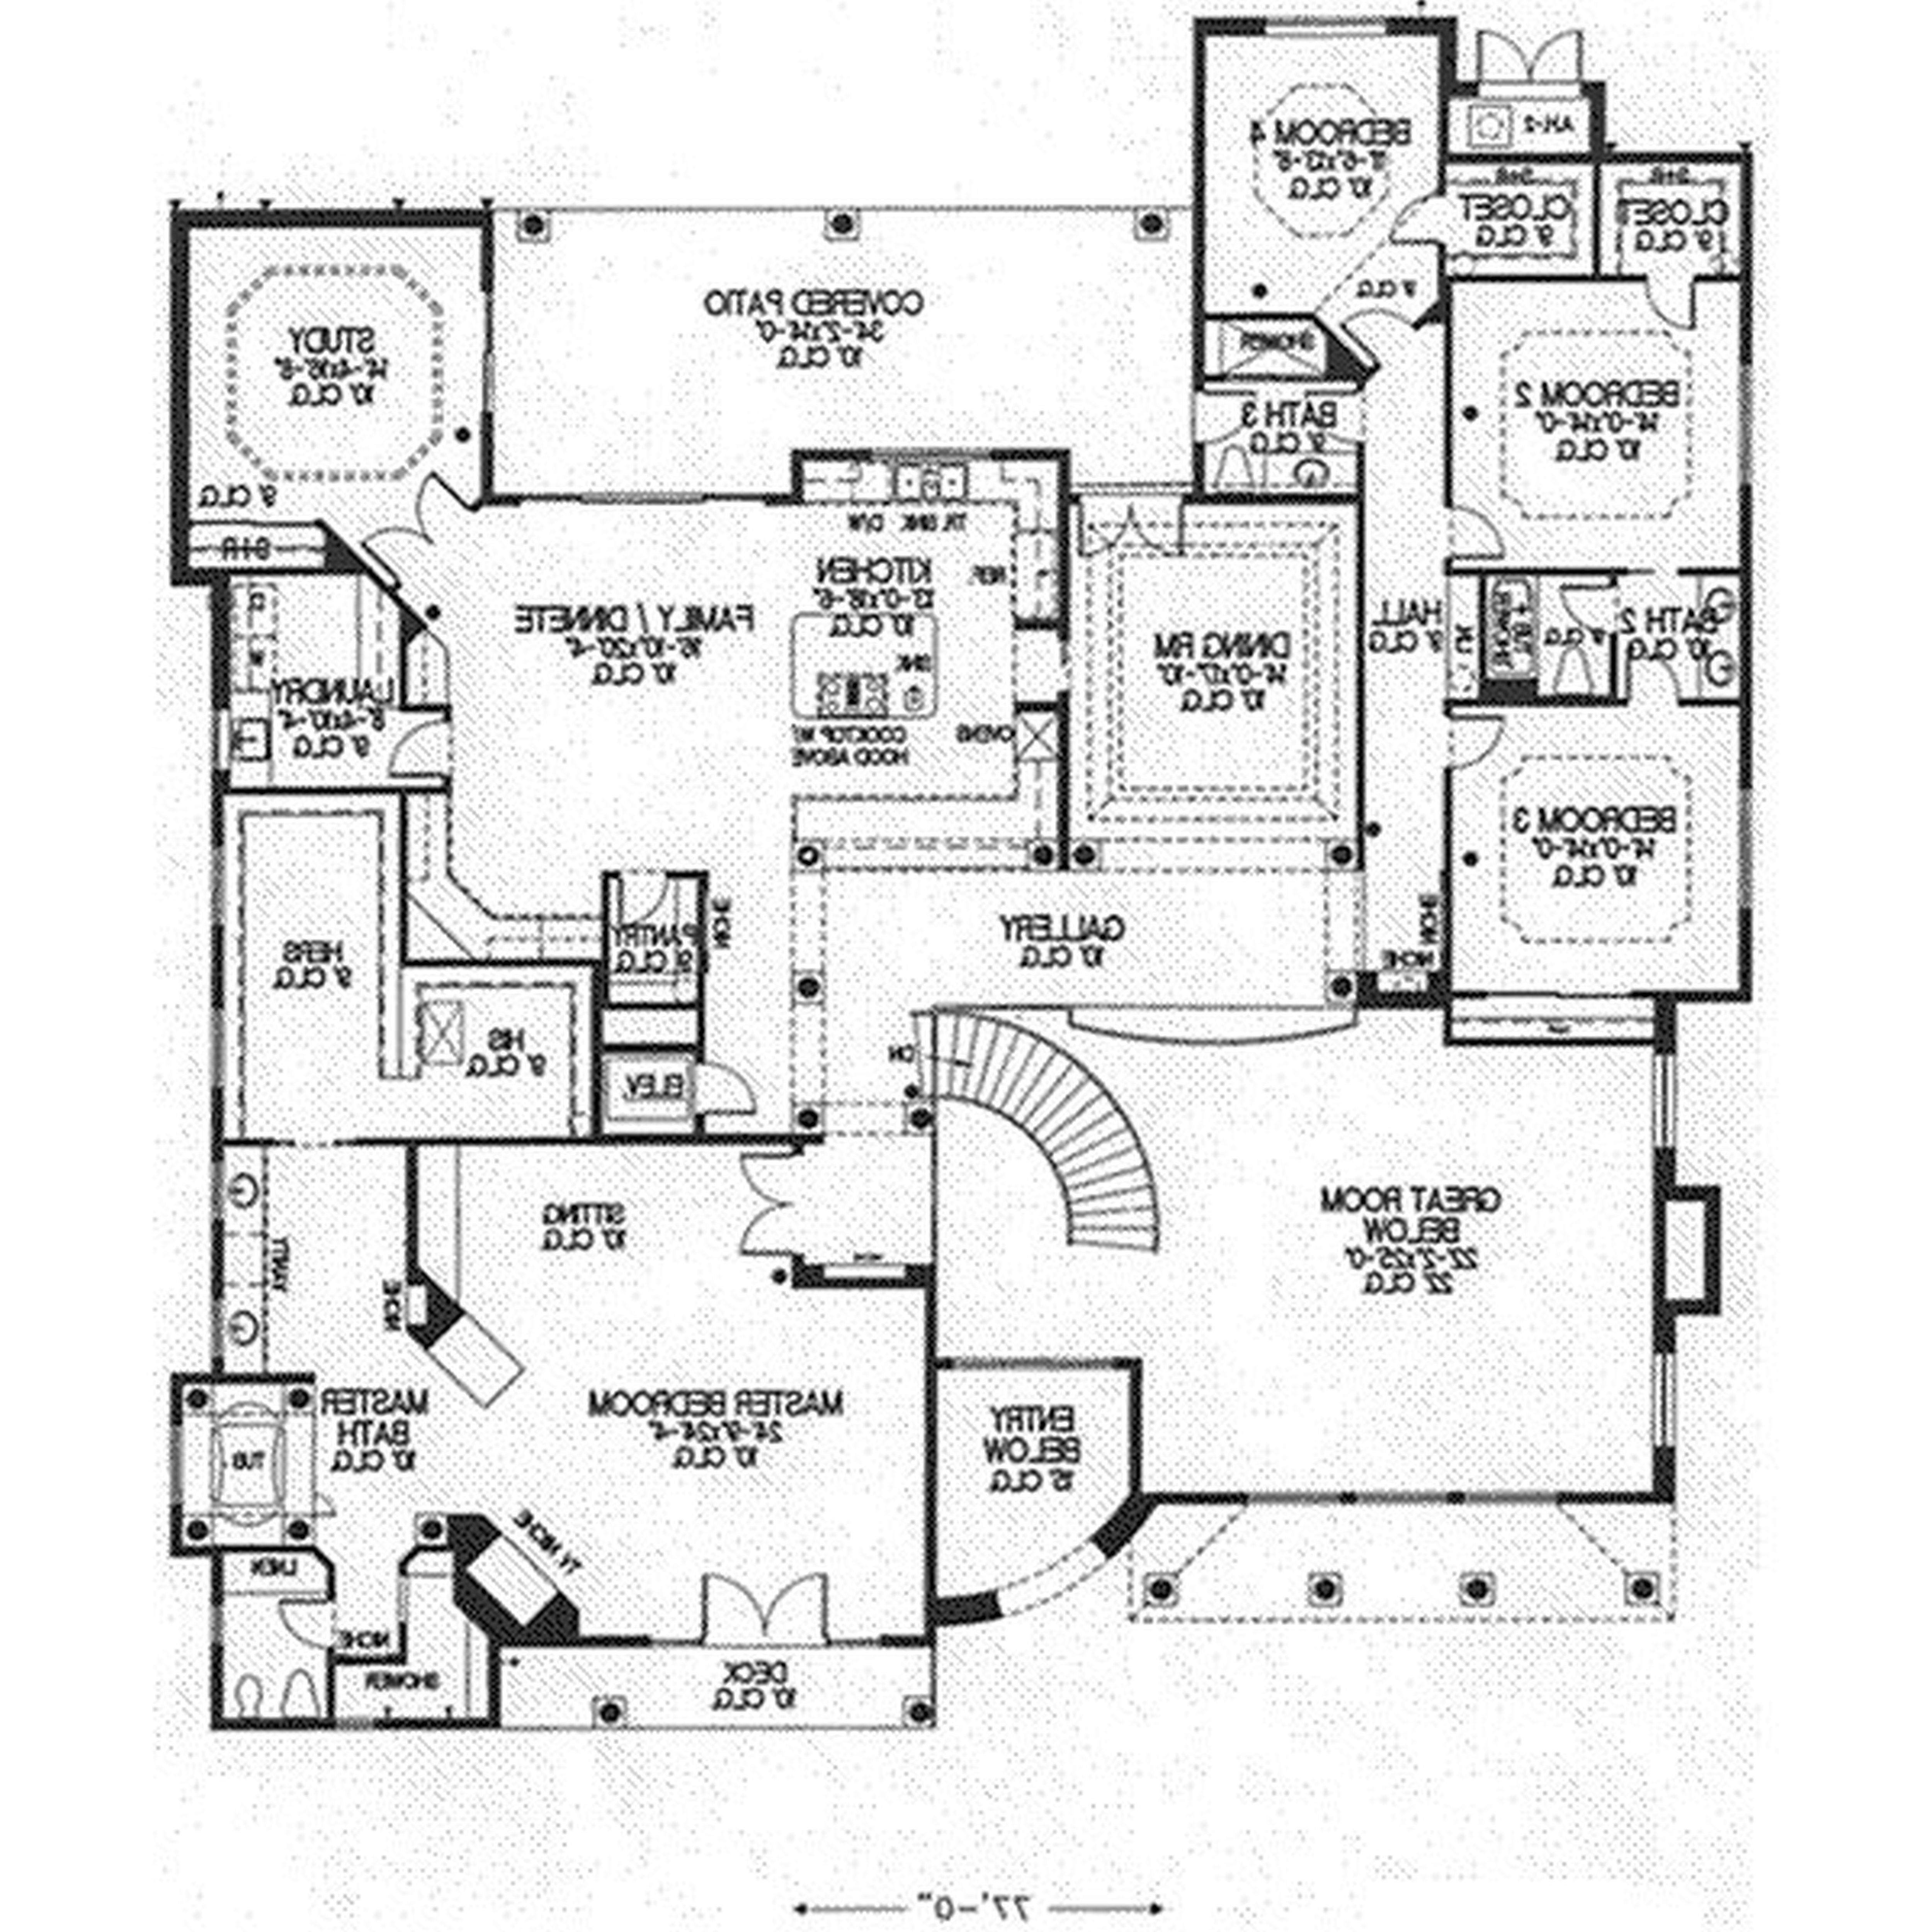 3 Bedroom Modern House Design Endearing Here We Are Our Collection Of 2015 Floor And Elevation Drawing Of 2018